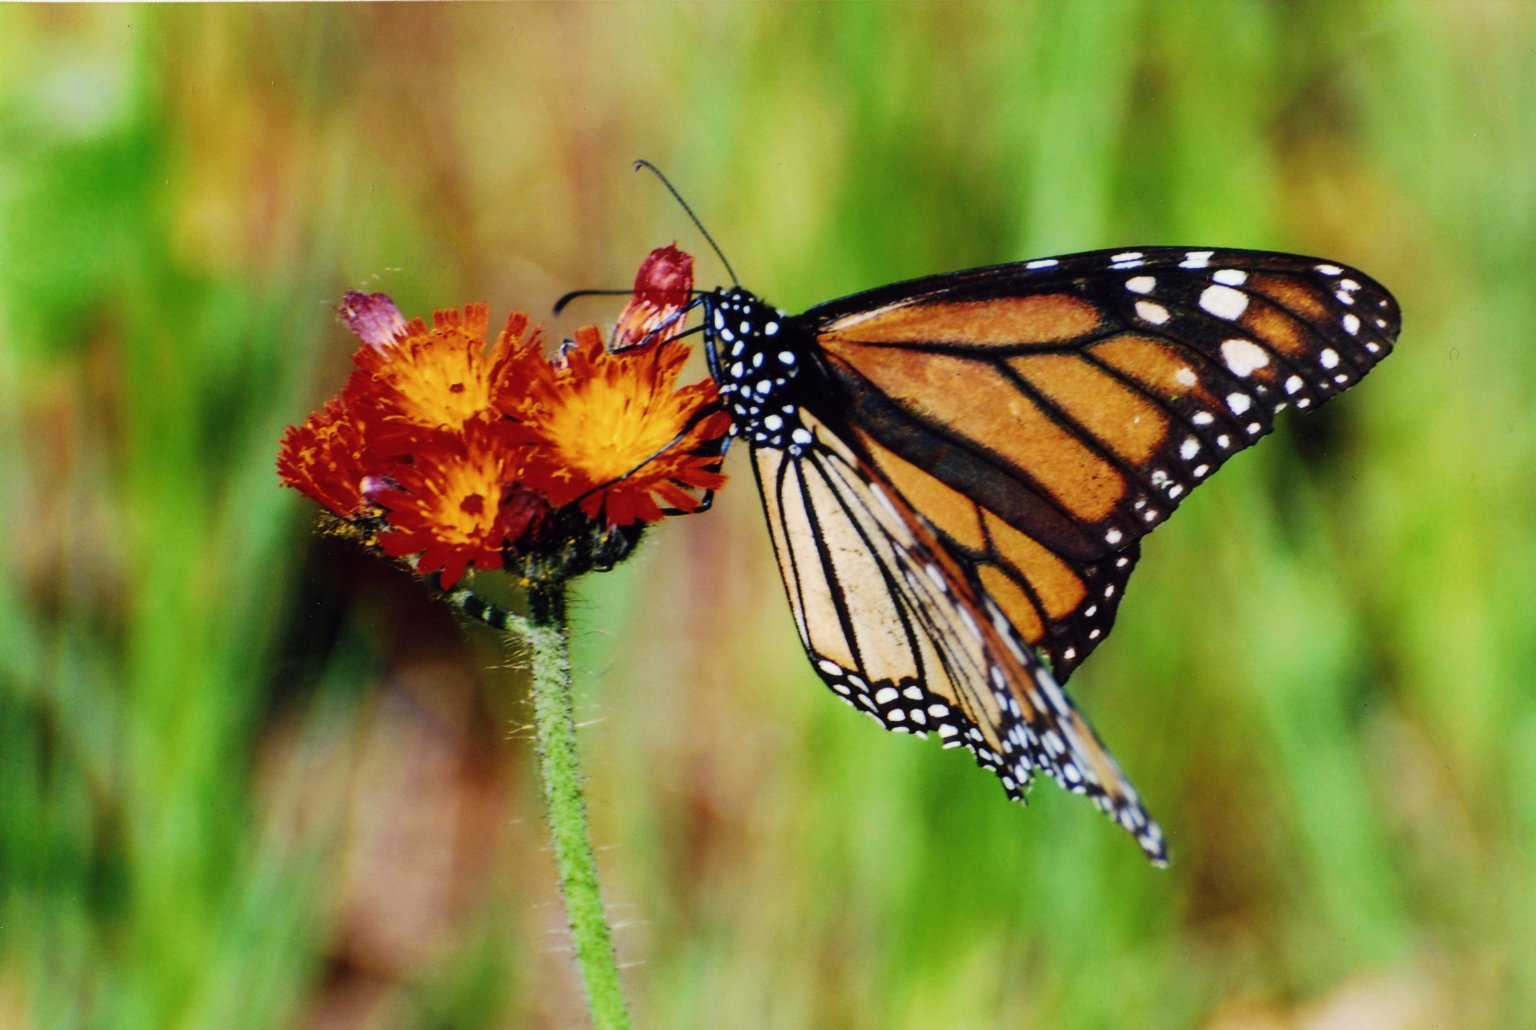 Close up of monarch butterfly sitting on red and yellow flower